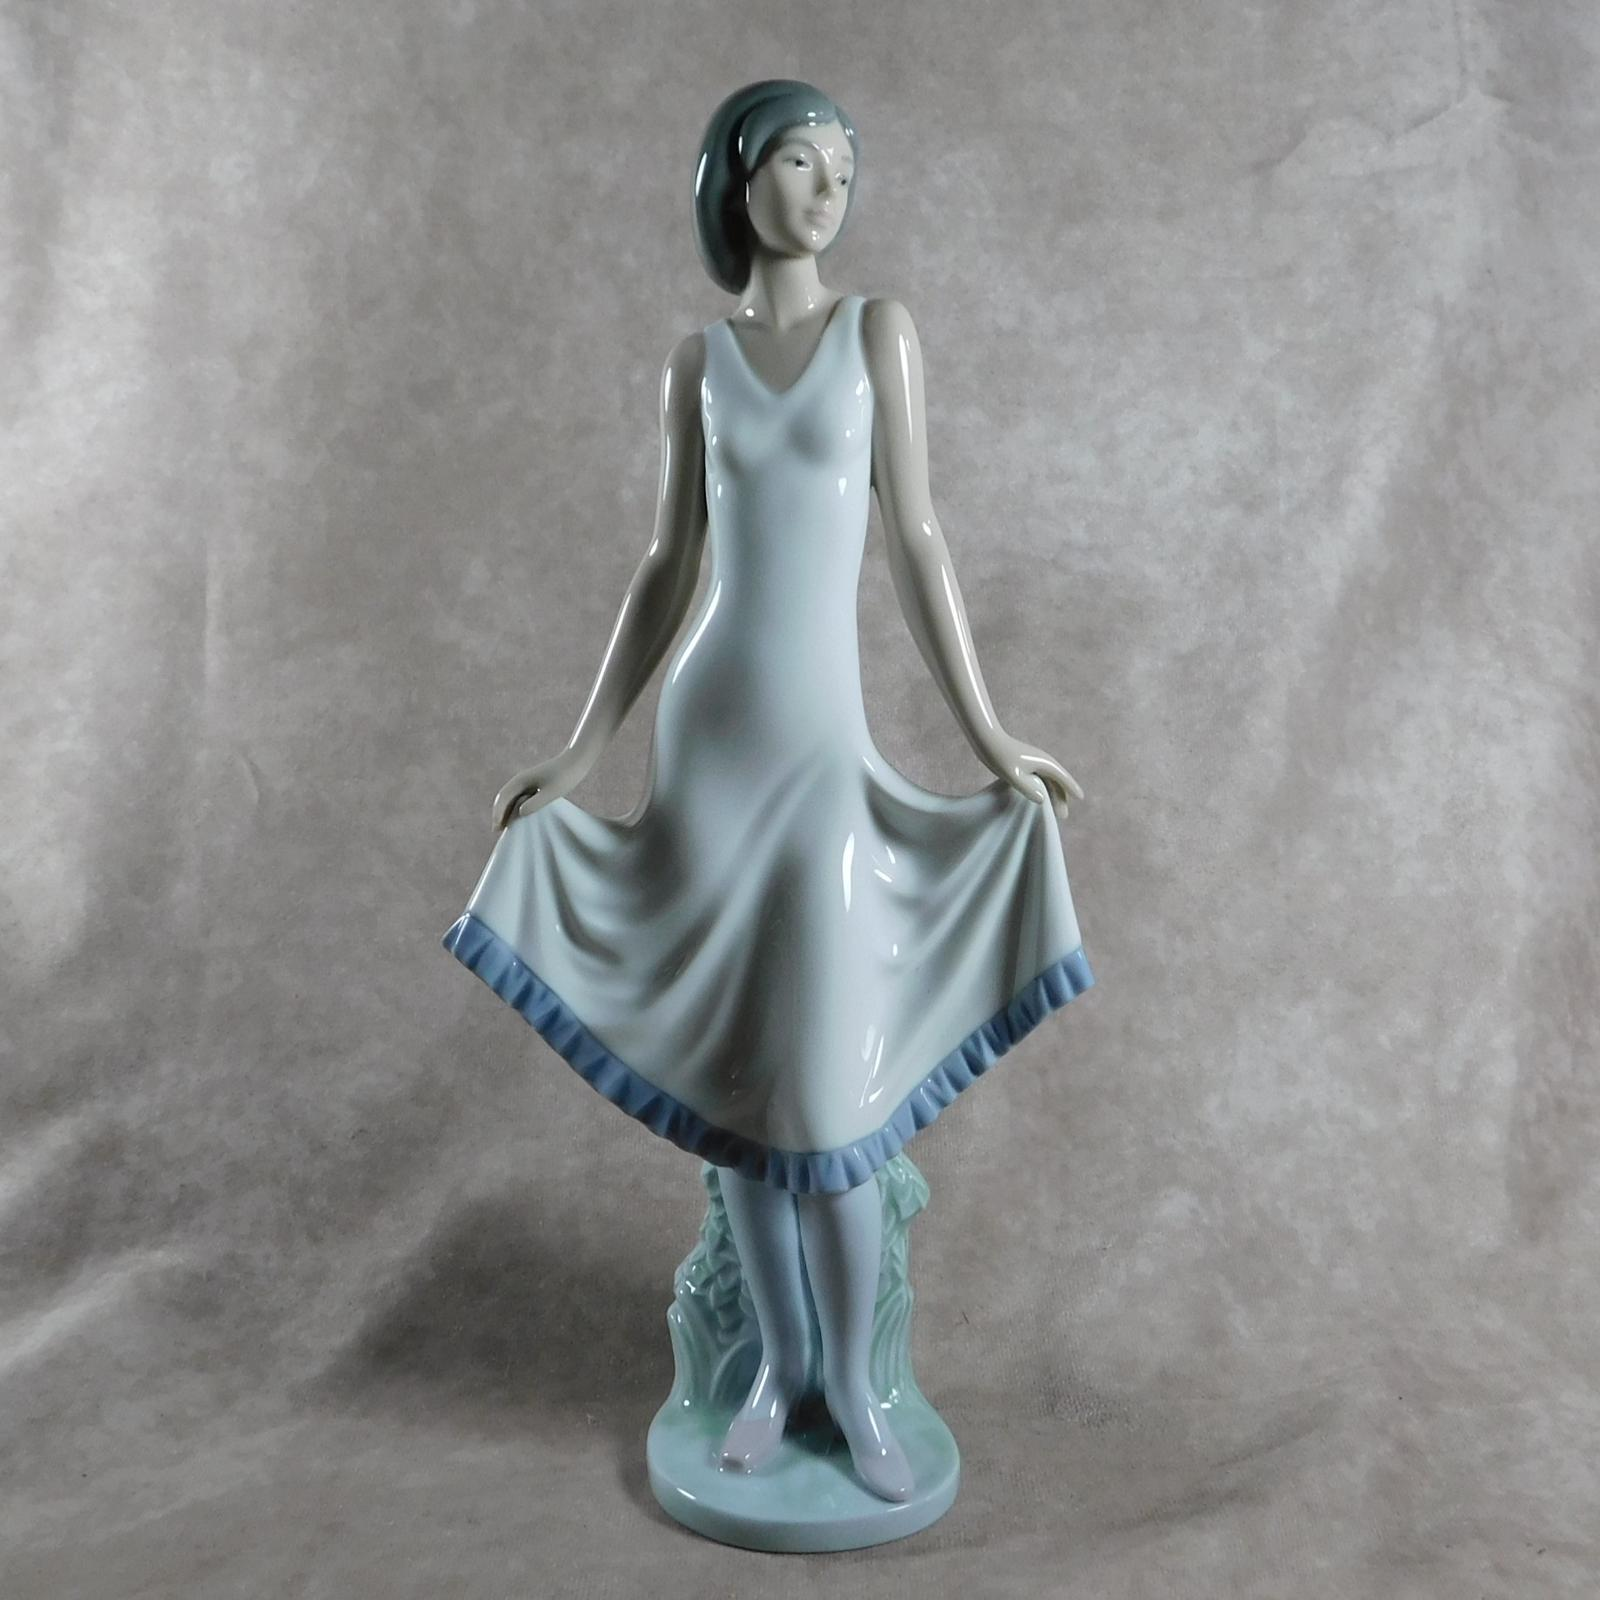 """""""El Modelito"""" or """"Pretty Pose"""" Hand Modelled Porcelain Figure by Nao (1 of 1)"""